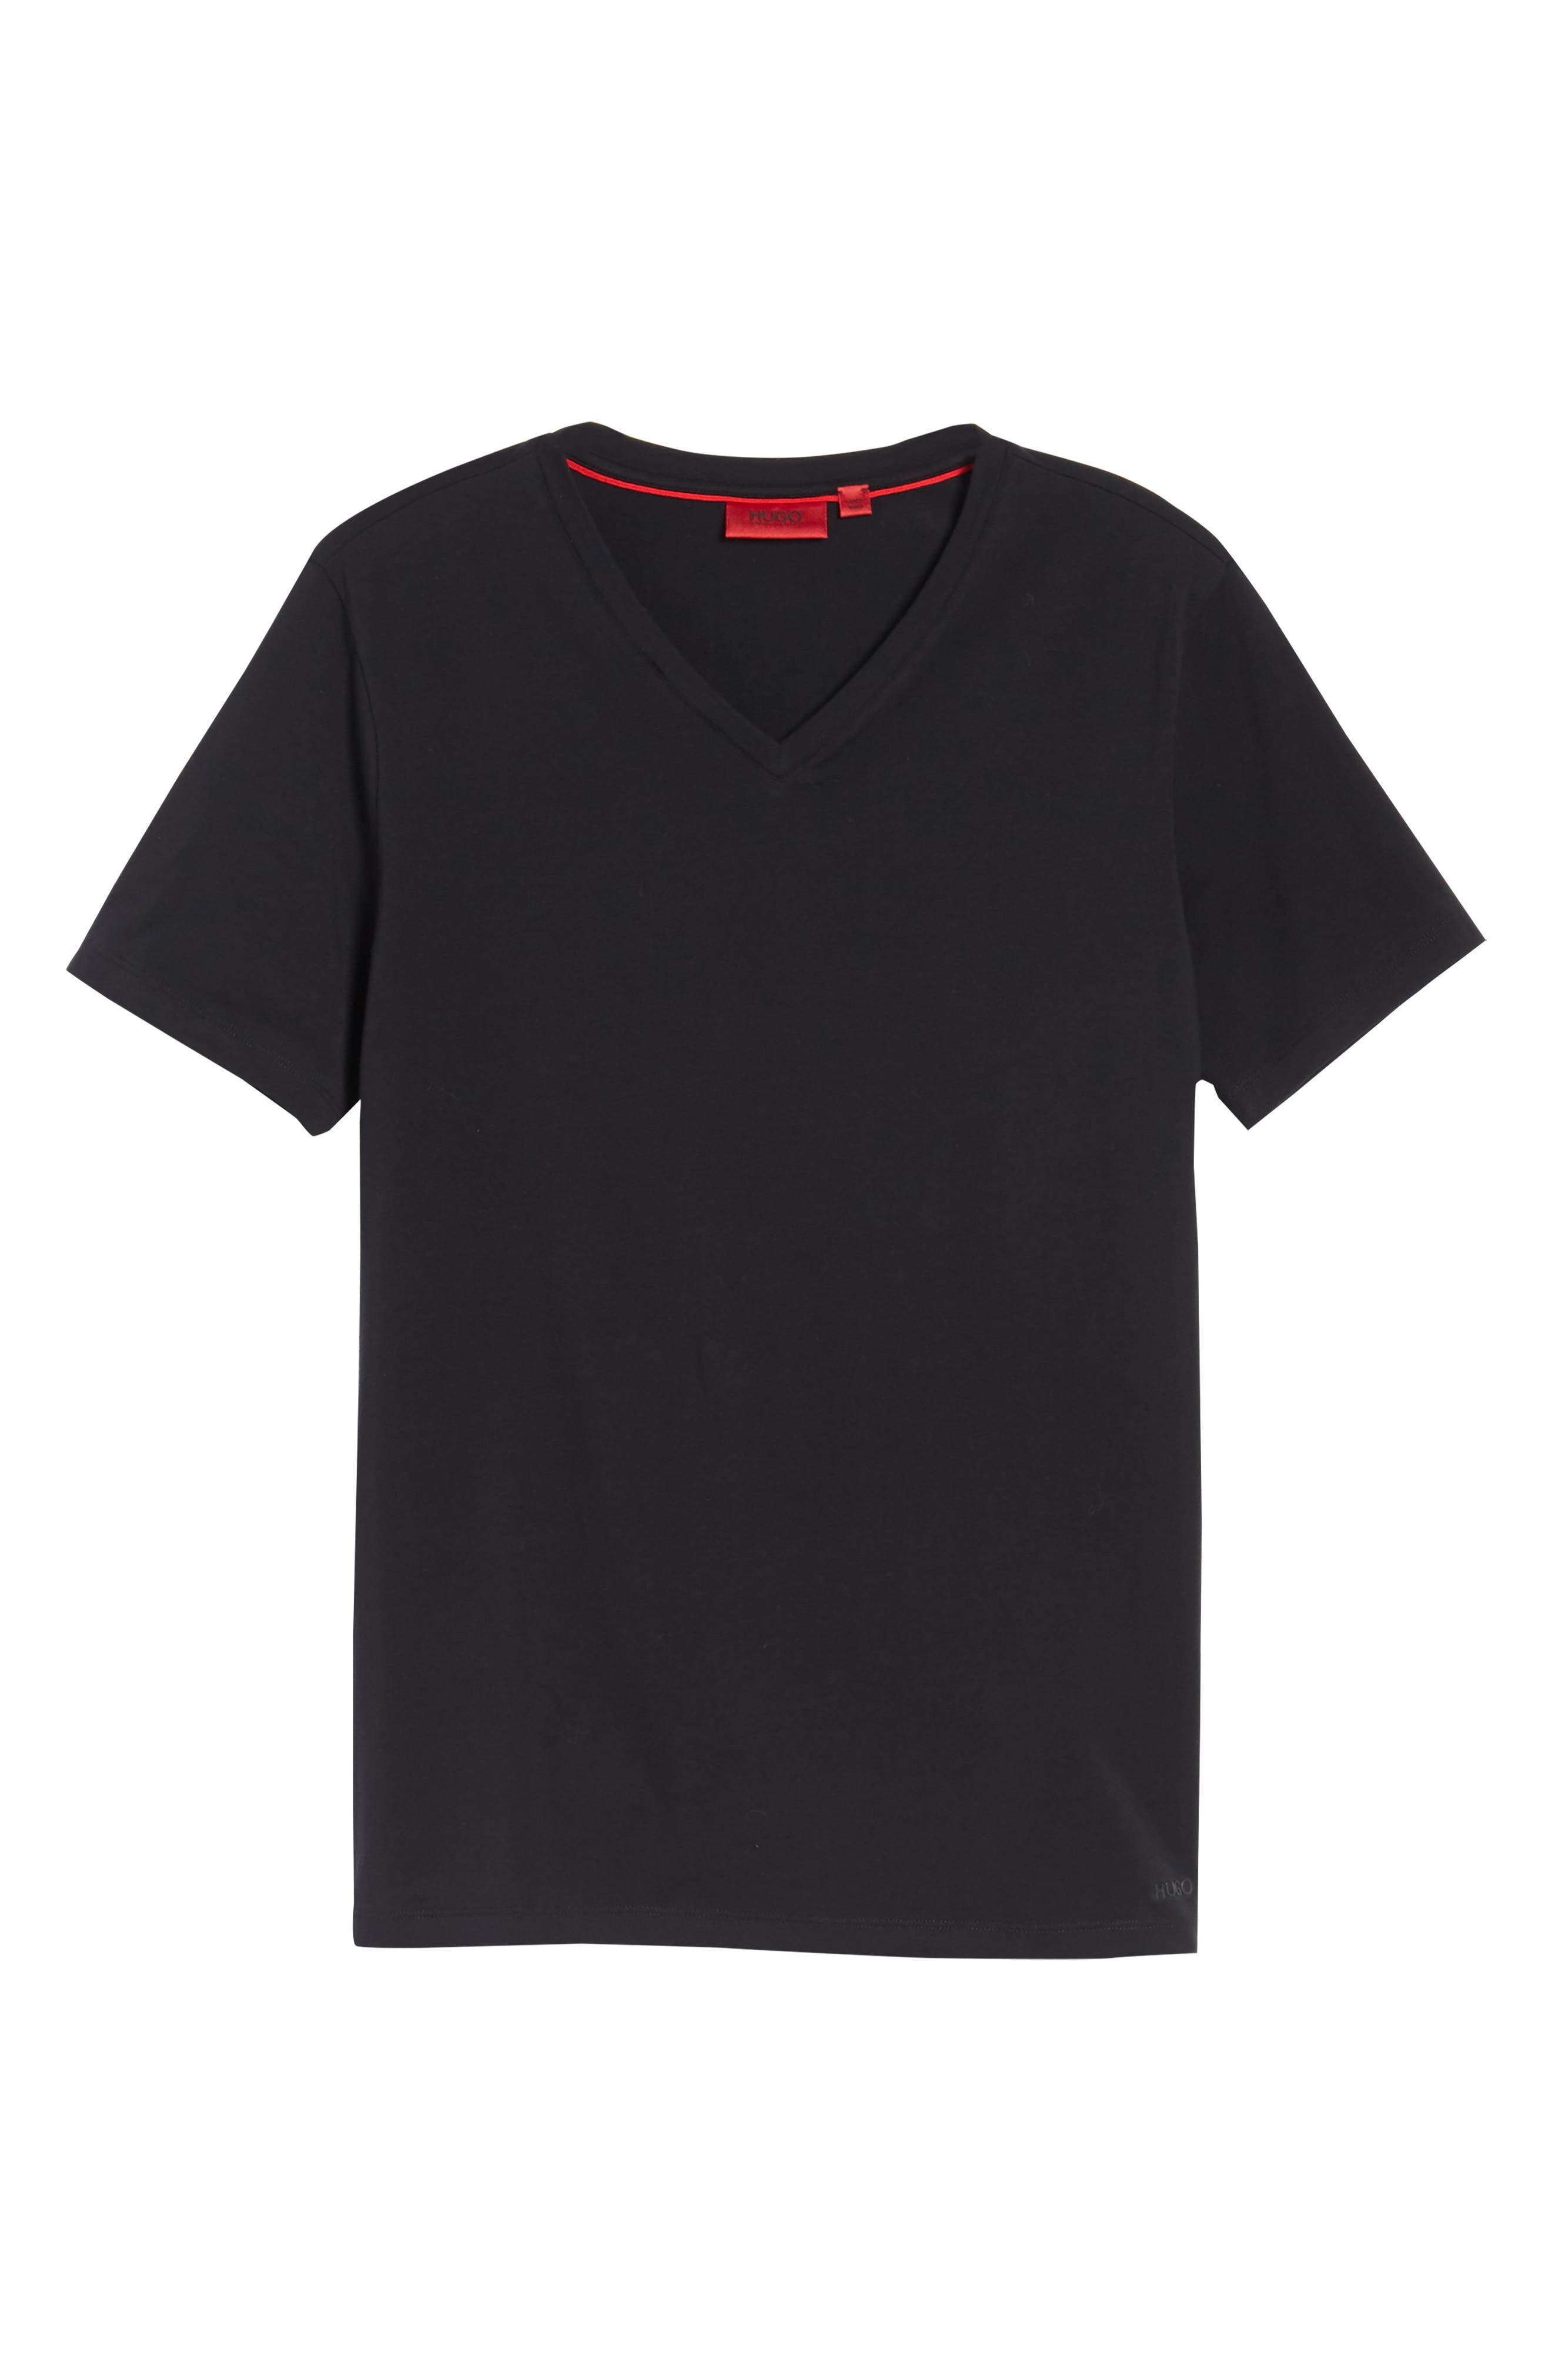 Dandre Slim Fit V-Neck T-Shirt,                             Alternate thumbnail 6, color,                             001